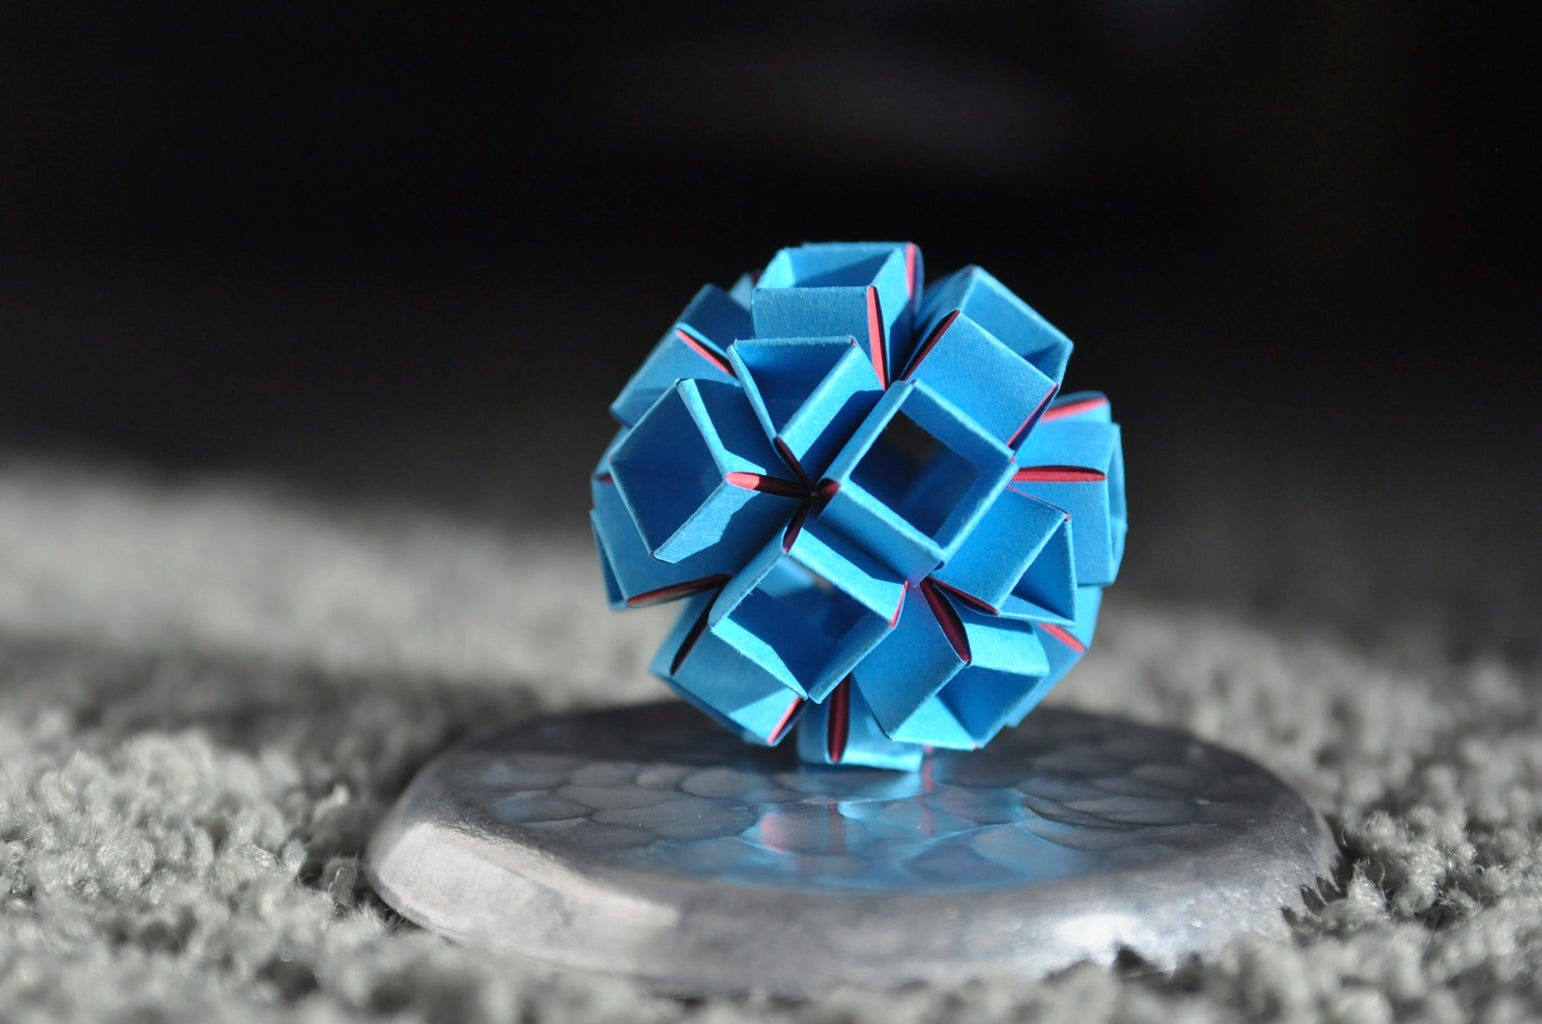 How to Make Snapology Origami